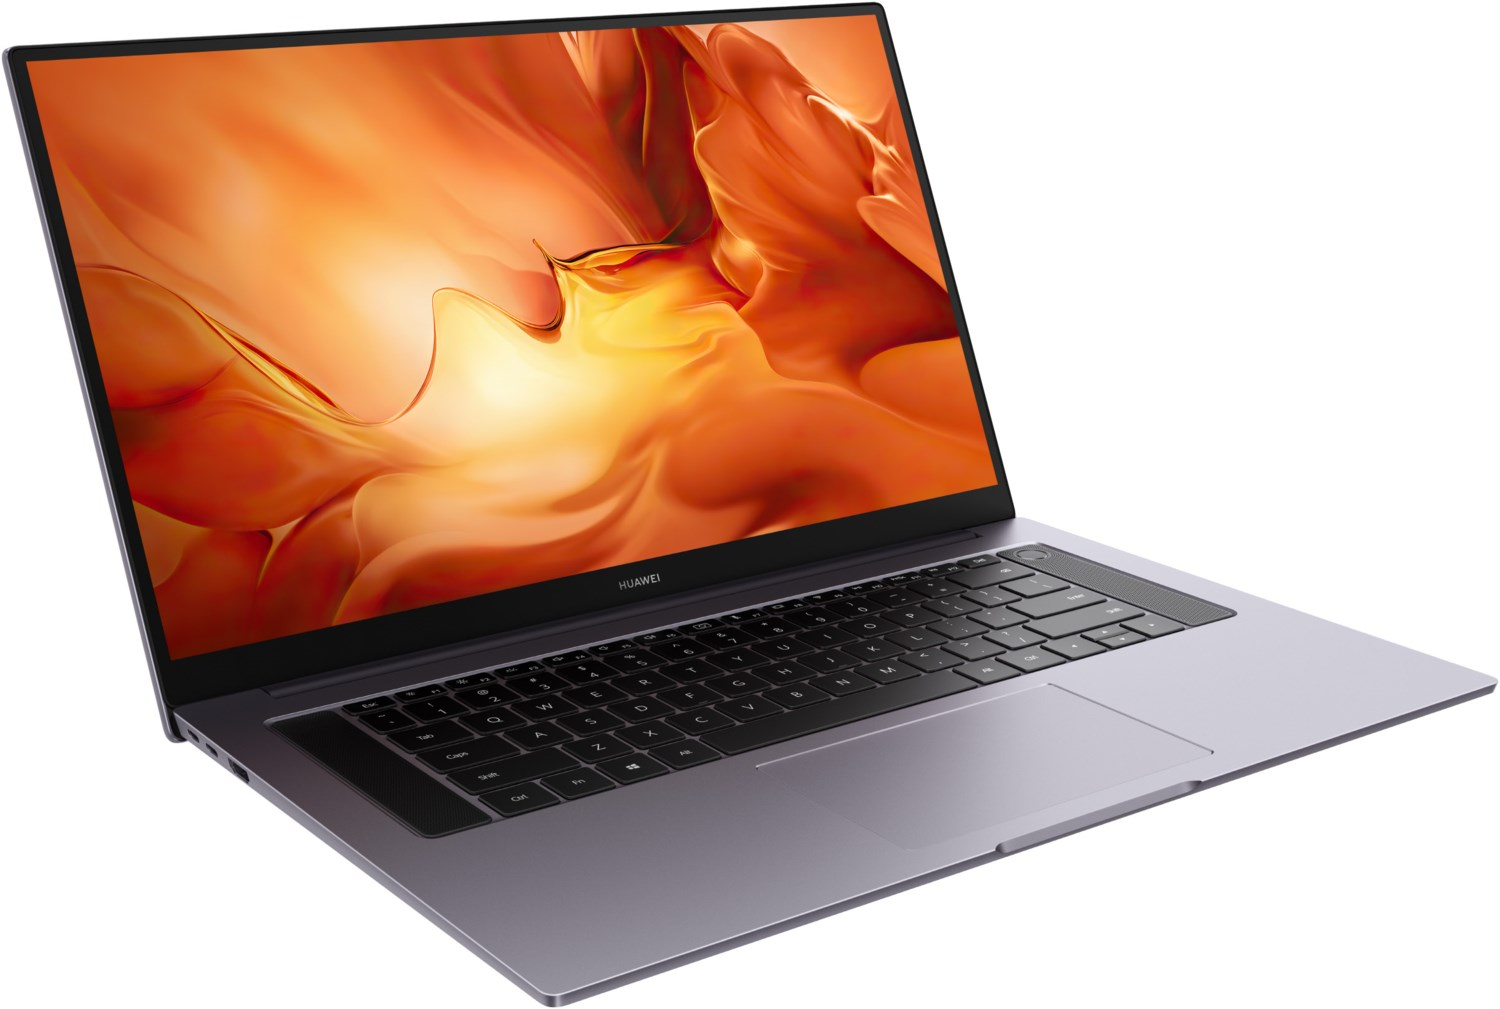 The Huawei MateBook D 16 reveals several advantages in the test compared to the nearly identical Honor MagicBook Pro